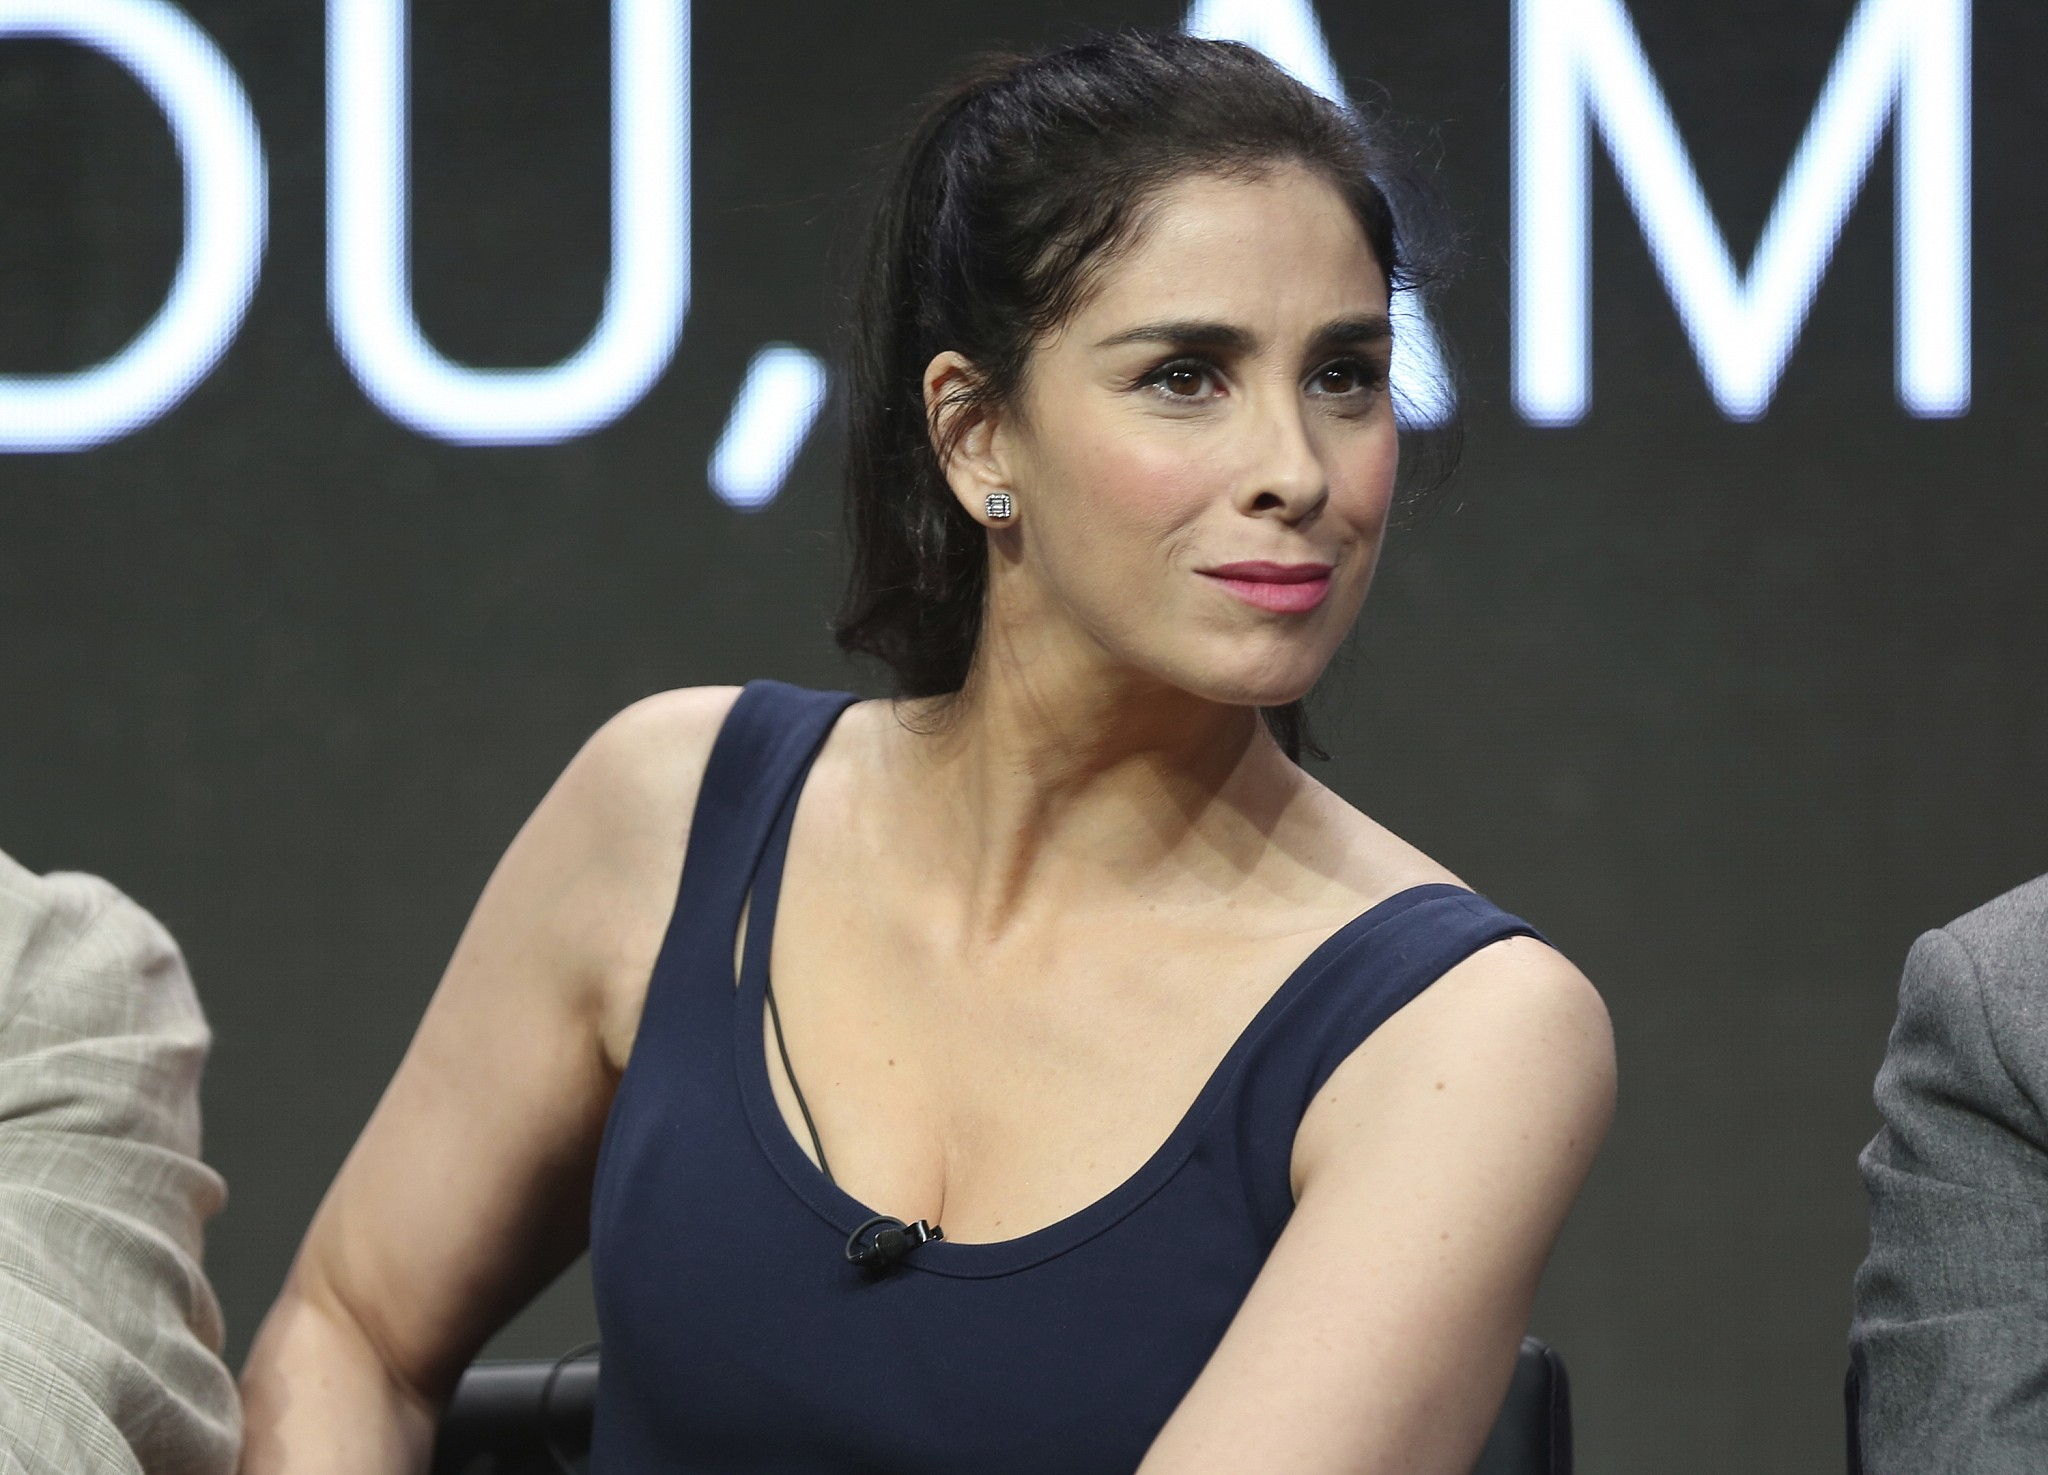 Sarah Silvermans Birthday Wishes To Her Nephew In The Idf Bring Out